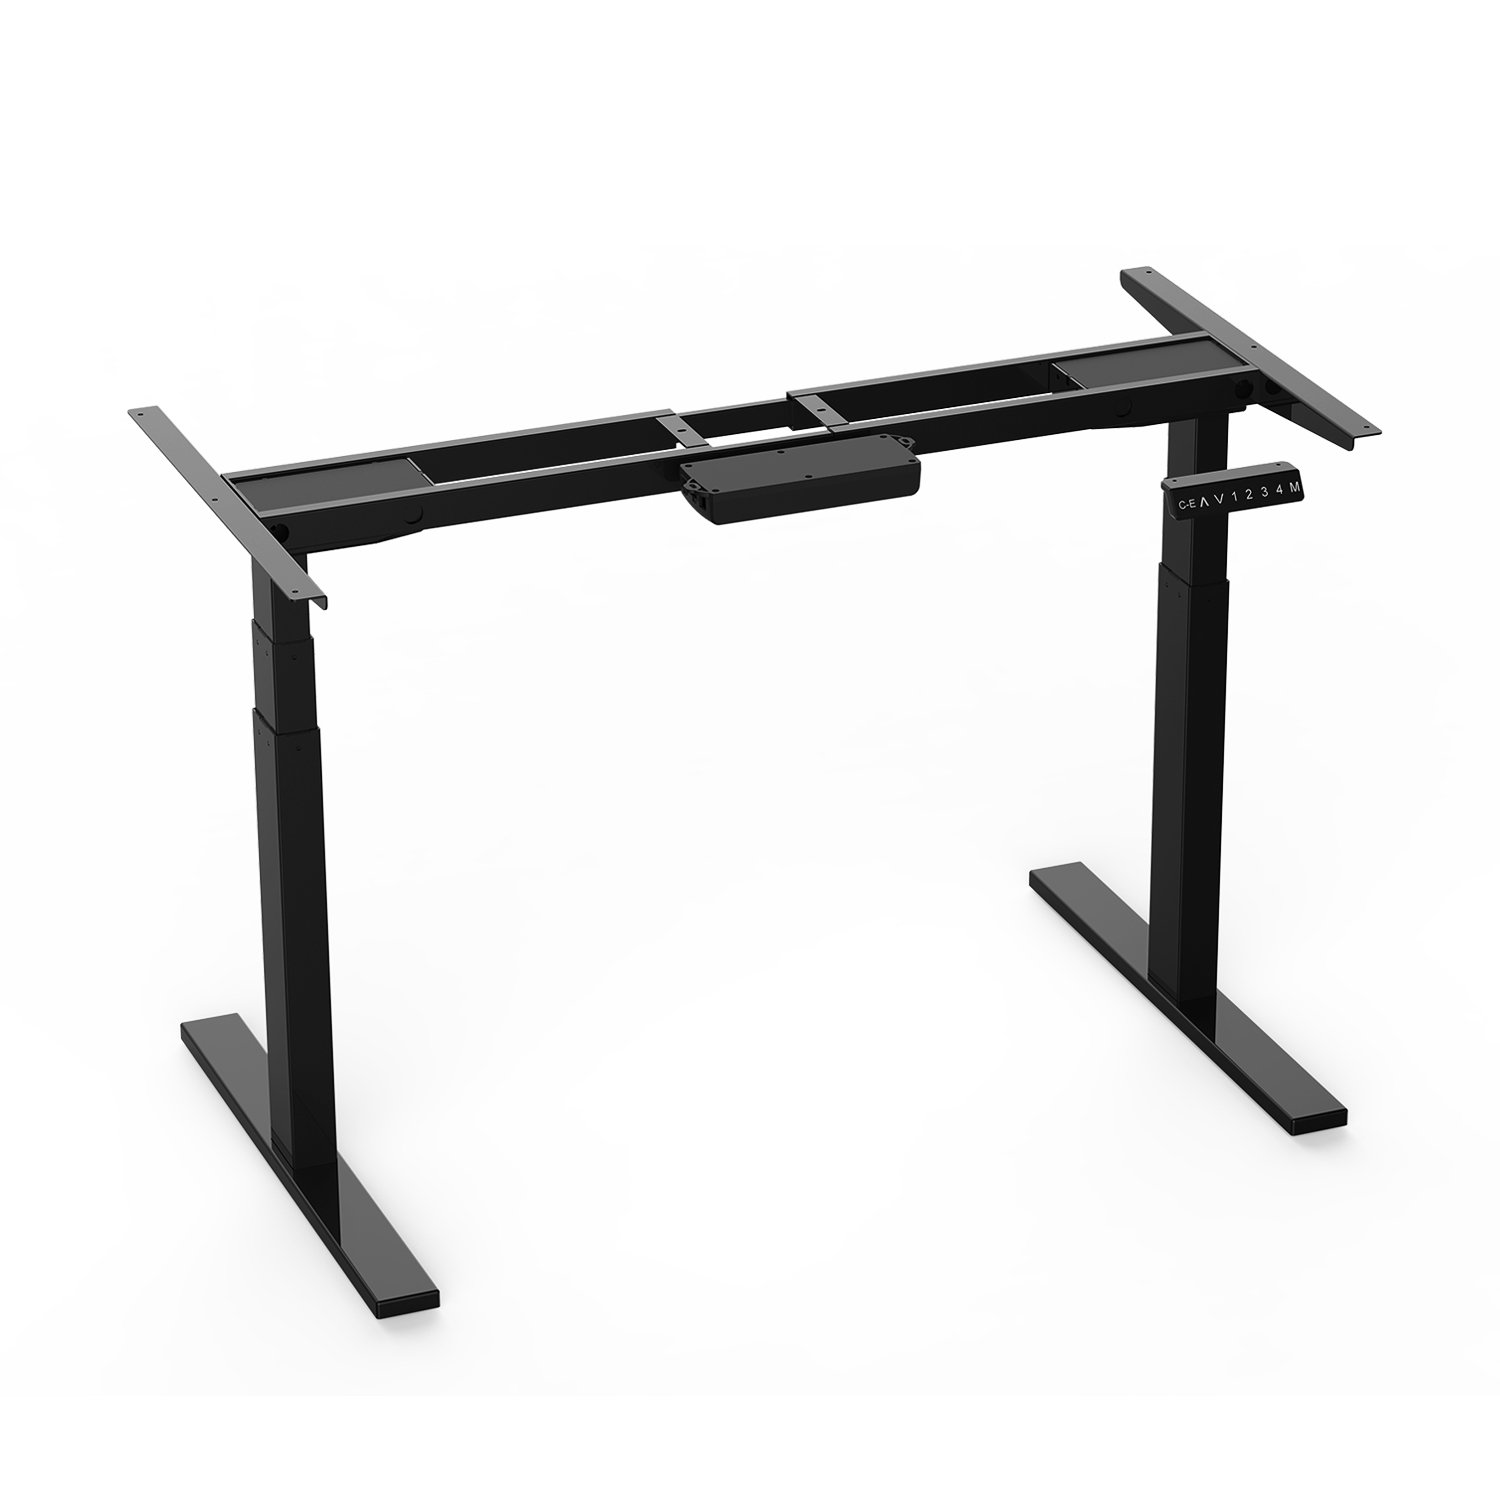 AIMEZO 3 Tier Adjustable Legs Dual Motor Electric Sit to Stand Desk Frame 71'' W Electric Height Adjustable Desk Base by AIMEZO